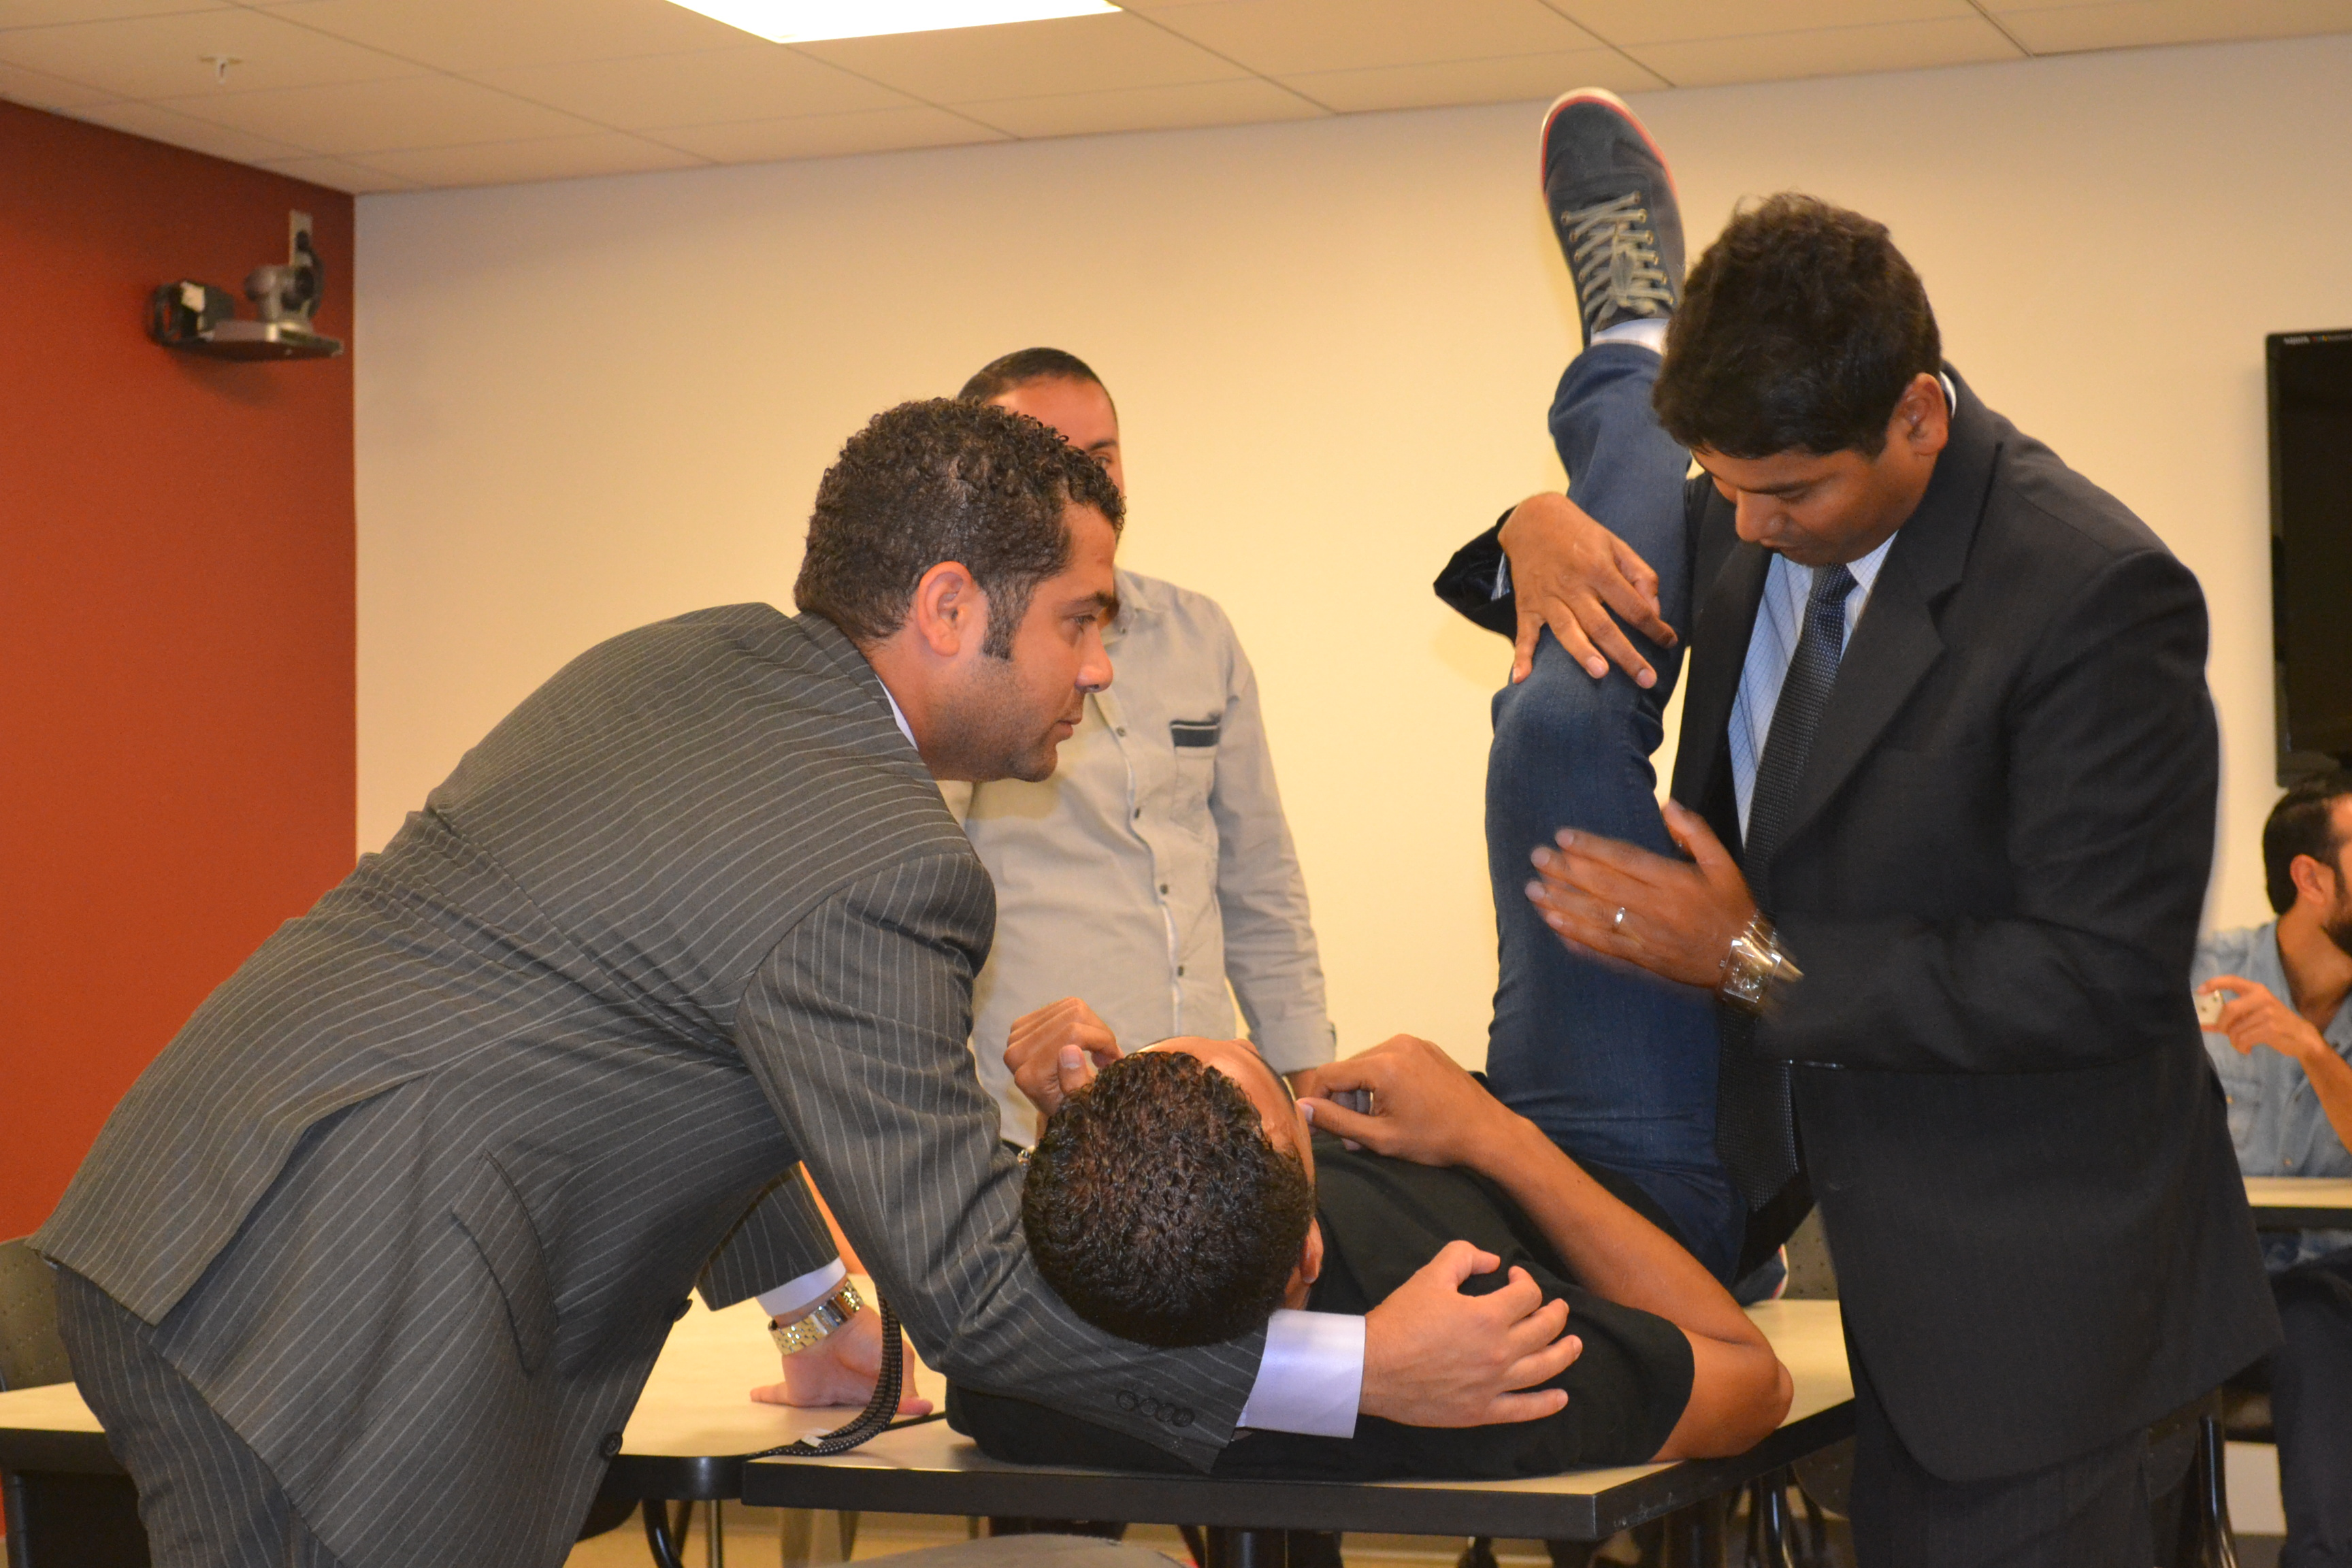 The coaches learned about medical prevention and treatment strategies specific to soccer injuries.